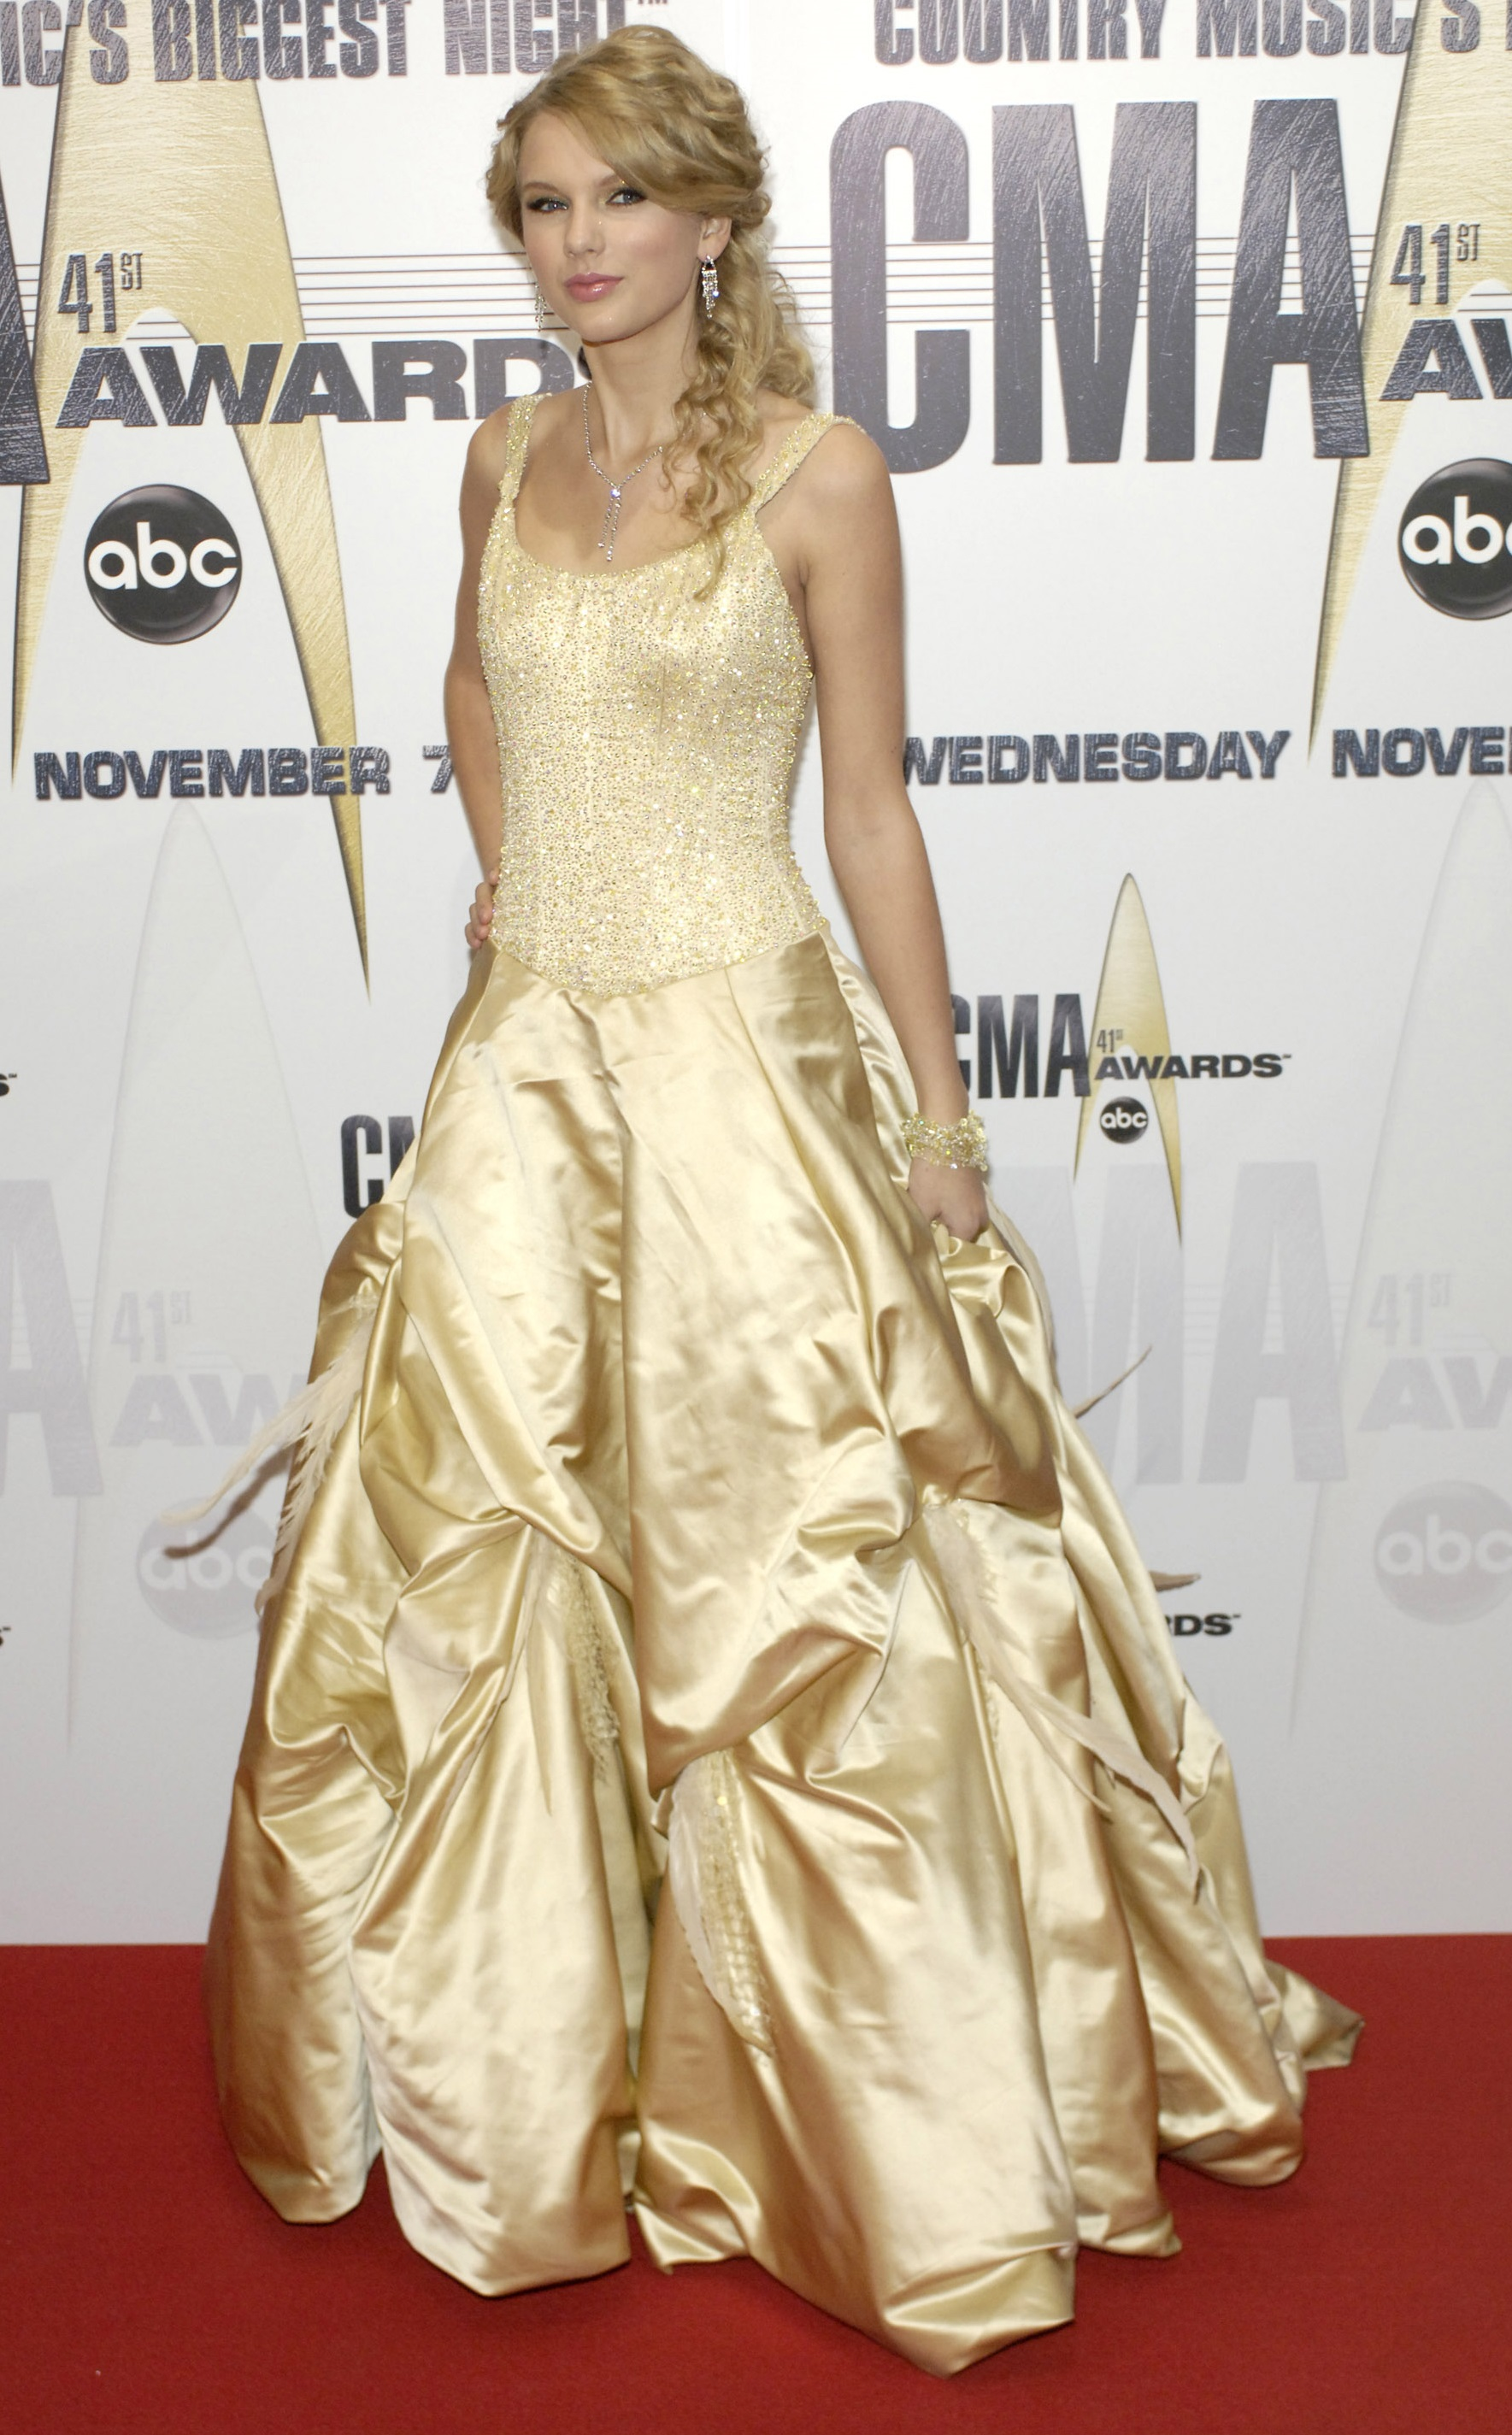 Taylor Swift arrives at the 41st Annual CMA Awards at the Sommet Center on November 7, 2007 in Nashville TN; Photo by Frank Mullen/WireImage